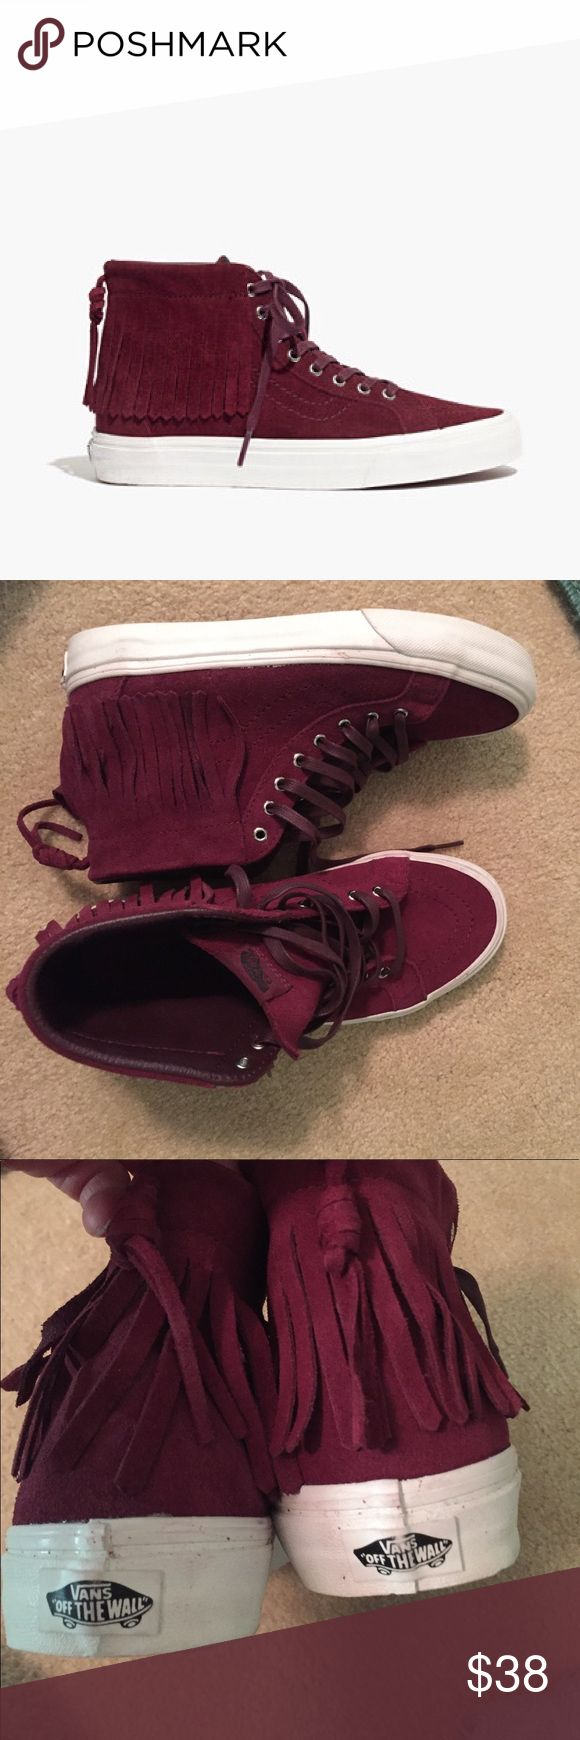 Vans Sk8-Hi Suede Fringe Sneakers 8 Burgundy NEW Super cool burgundy suede high tops by Vans. Lace ups with fringe detail at top. Women's size 8. New without box. Inside label marked through to deter bogus store returns. Vans Shoes Sneakers